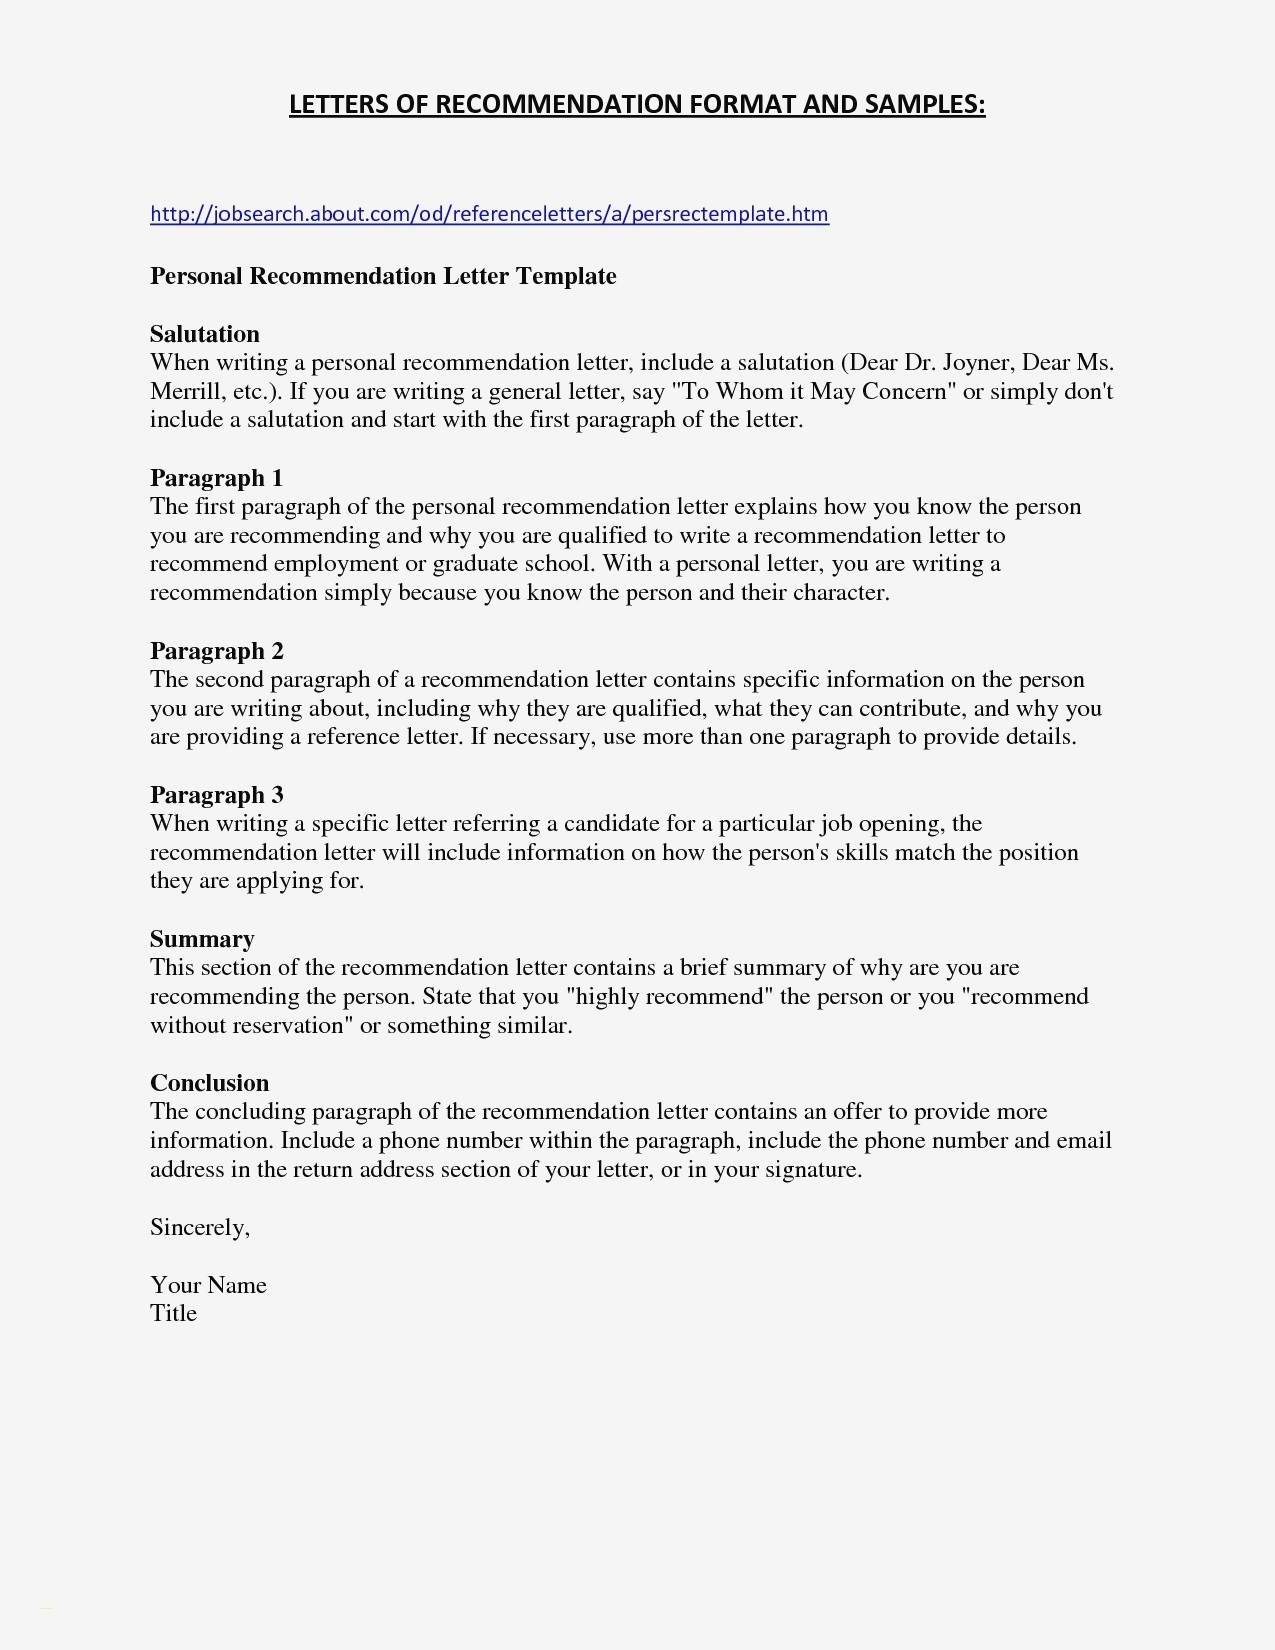 Resume Template for Mba Graduates - Resume format for Mba Valid Mba Resume Template Reference the Proper